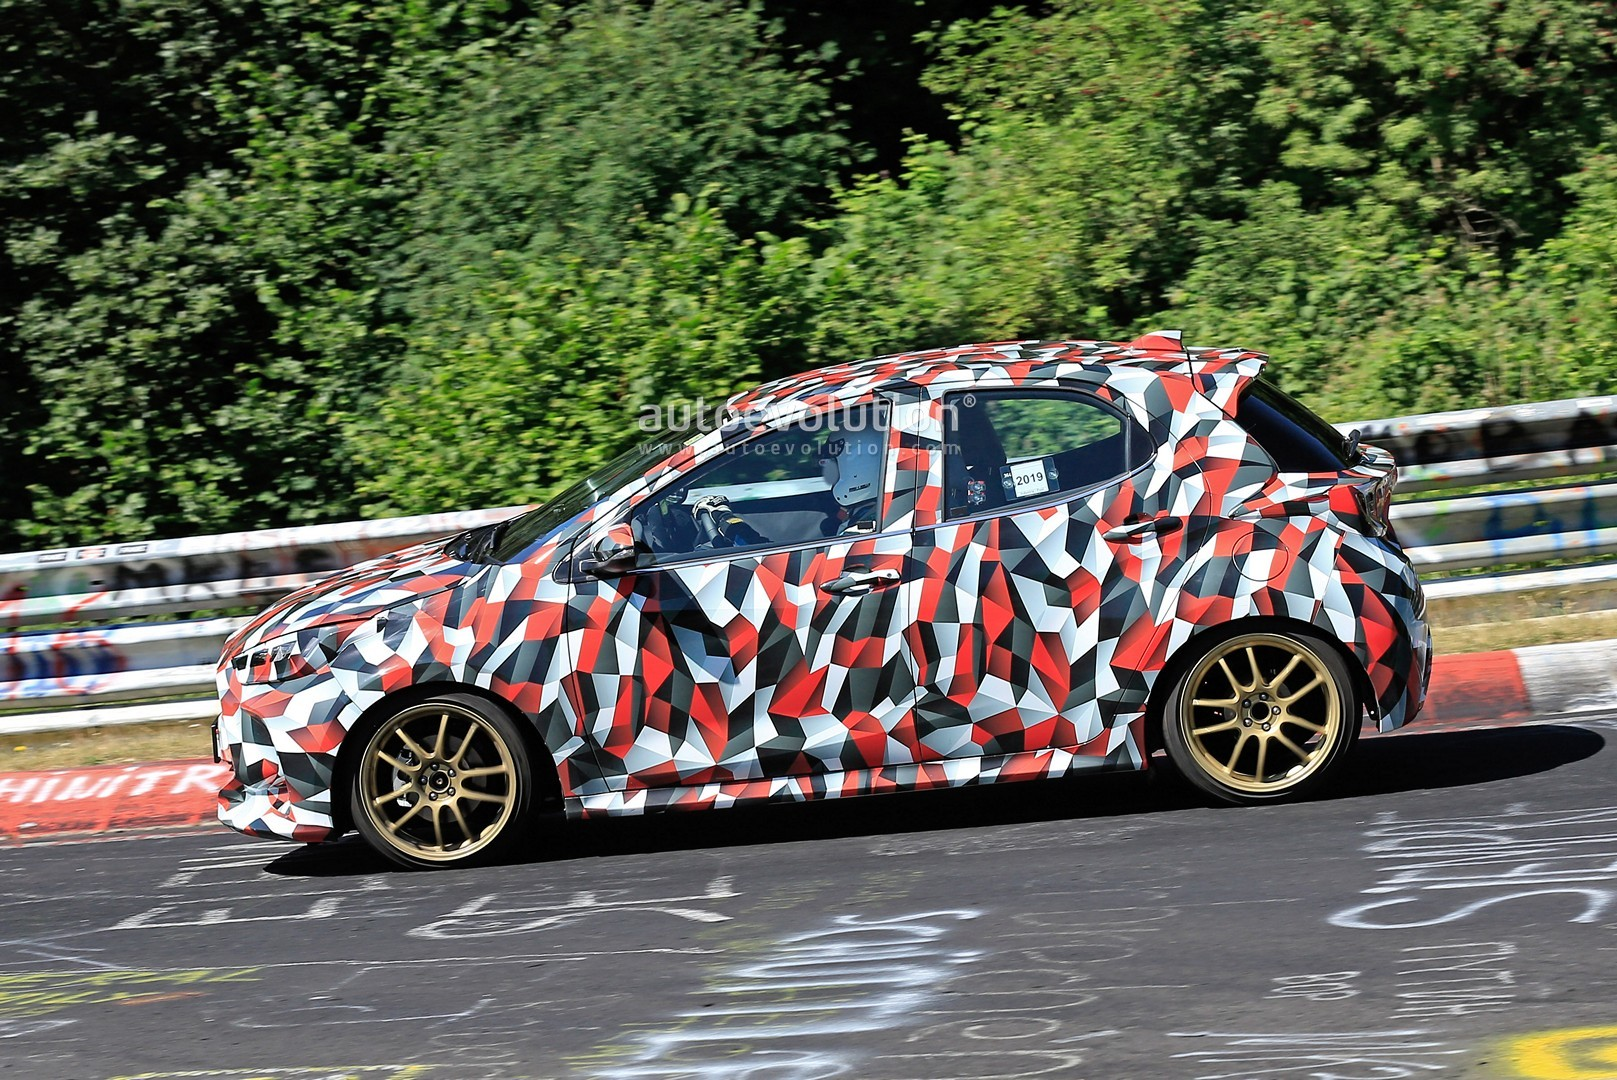 all-new-to​yota-yaris​-spied-at-​the-nurbur​gring-in-h​ybrid-and-​sport-form​s_24